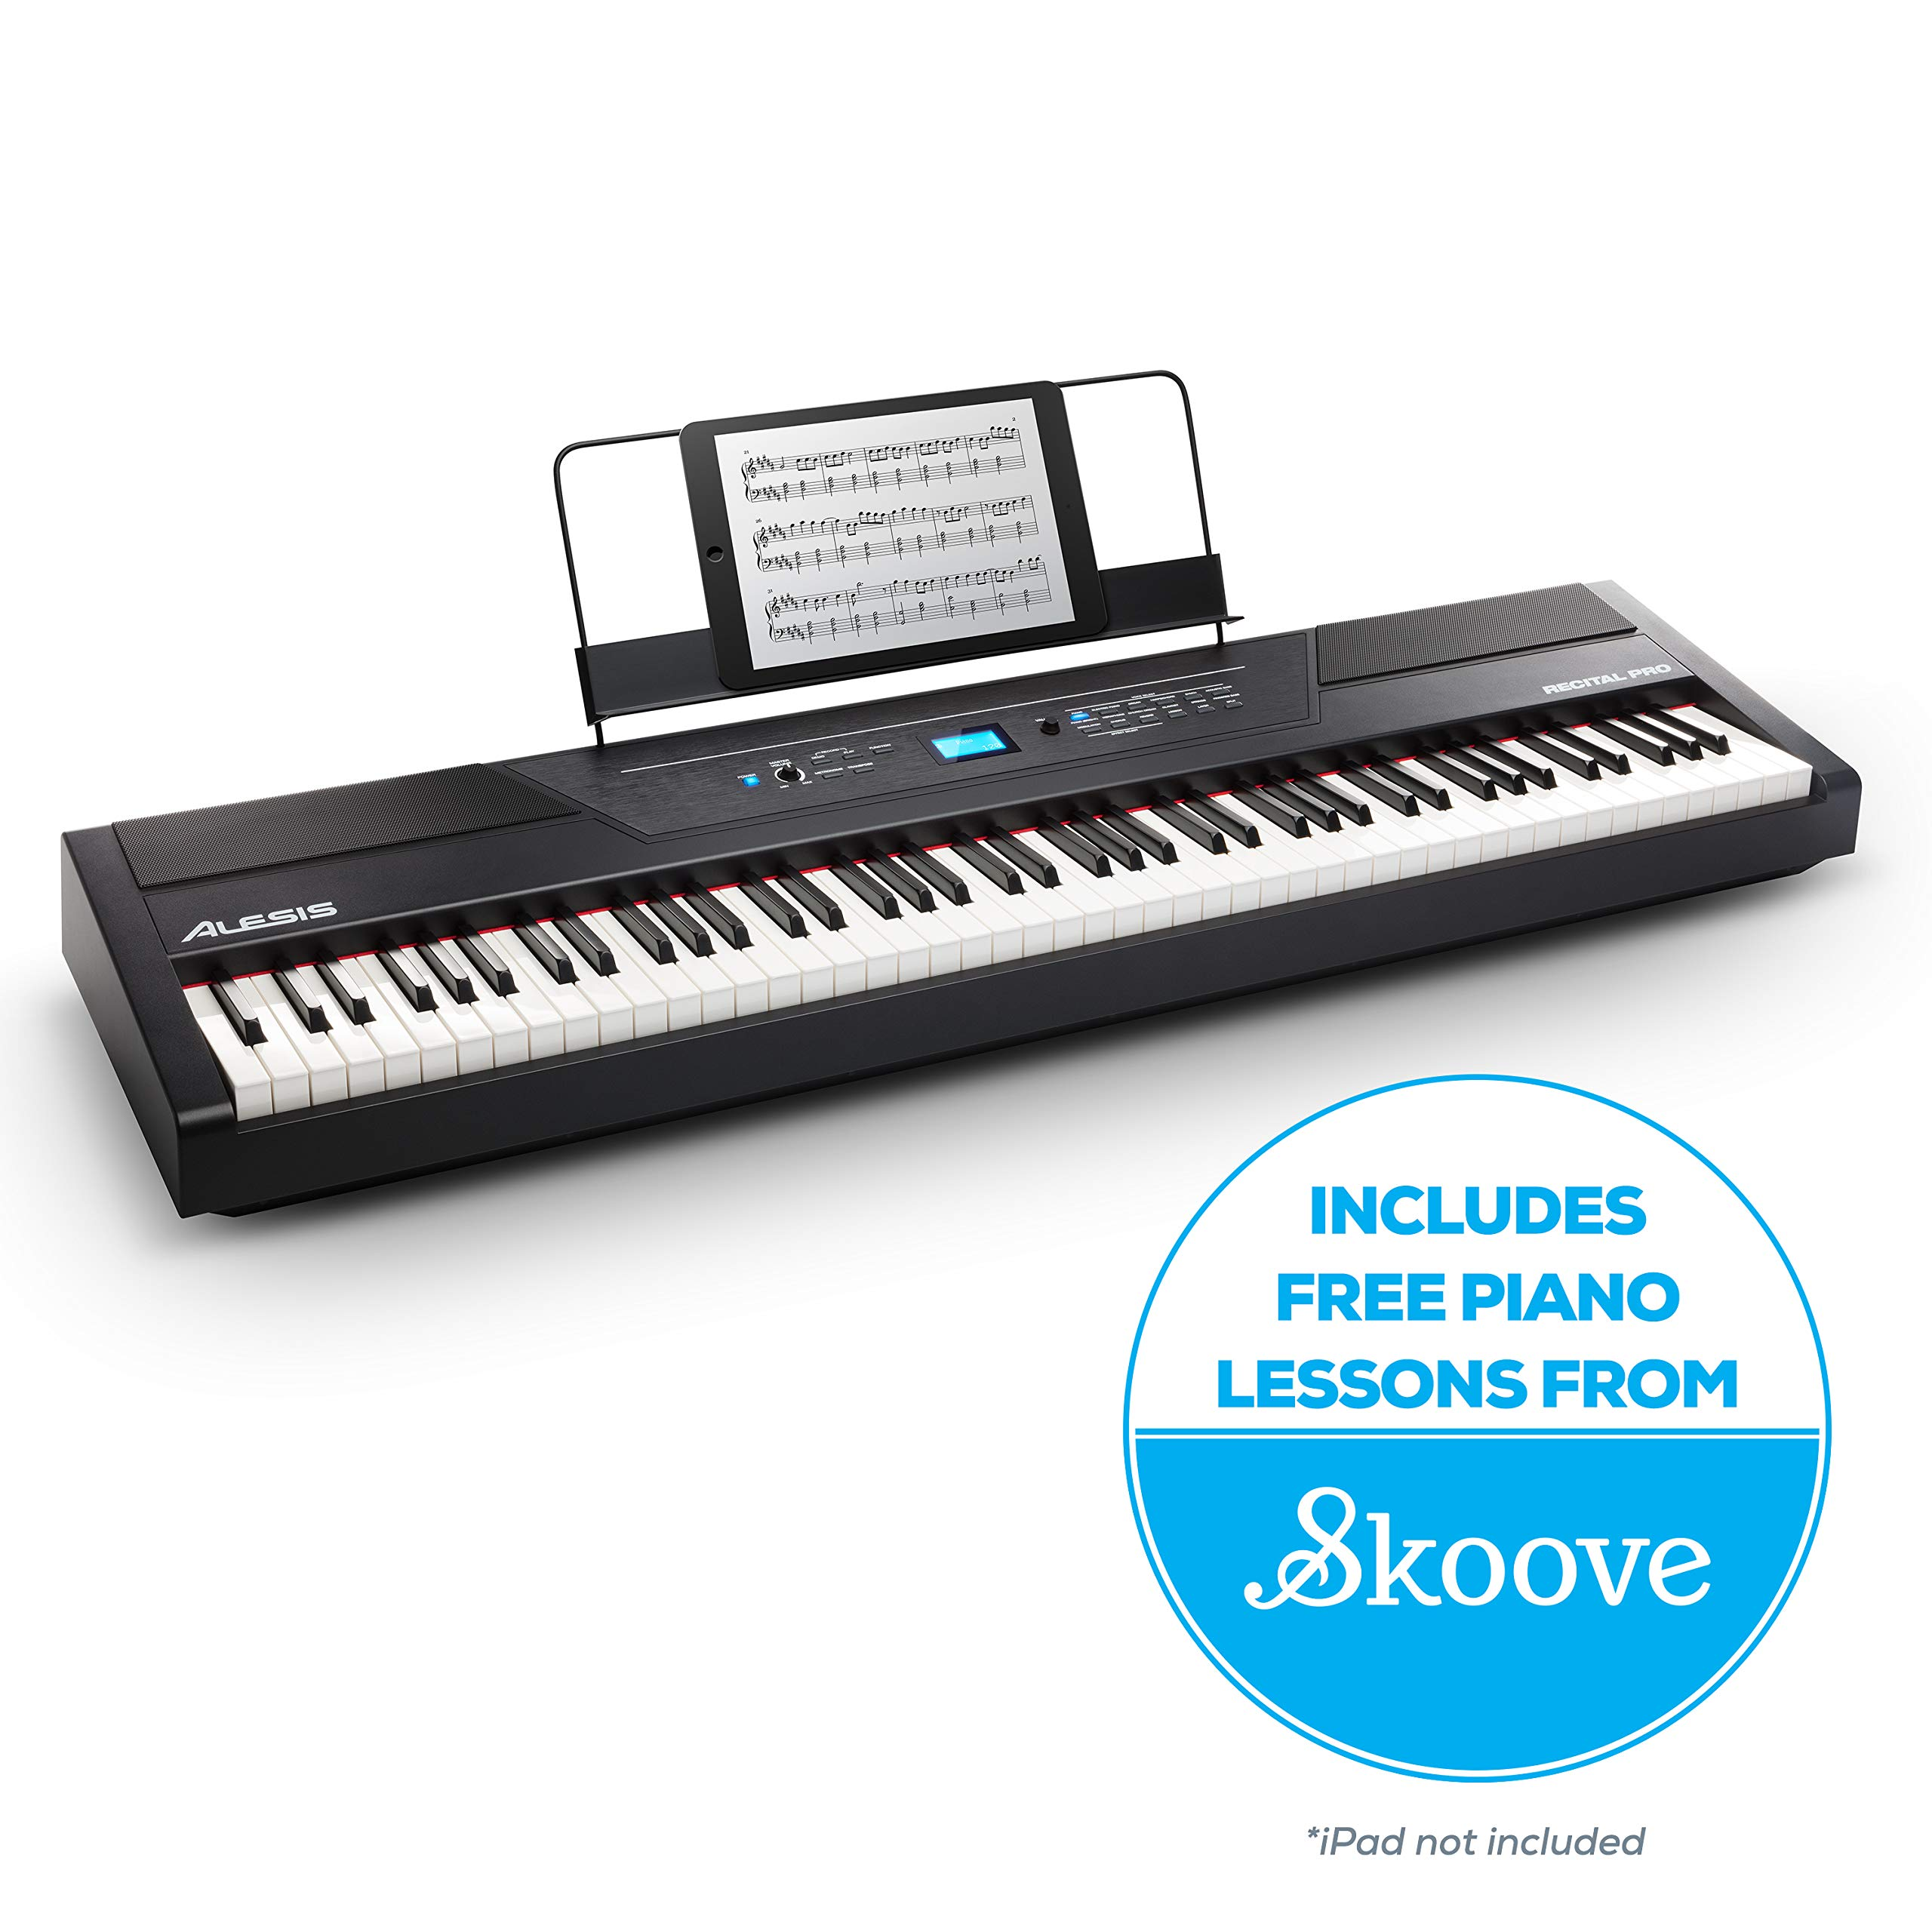 Alesis Recital Pro |  Digital Piano / Keyboard with 88 Hammer Action Keys, 12 Premium Voices, 20W Built in Speakers, Headphone Output & Powerful Educational Features by Alesis